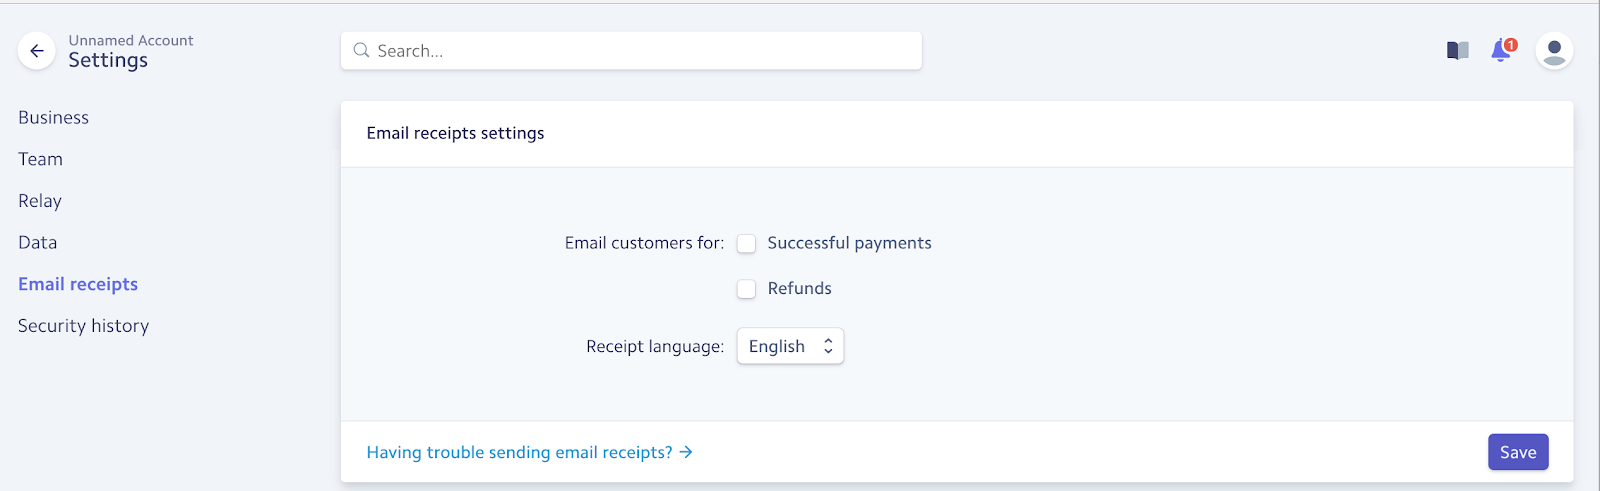 email receipts